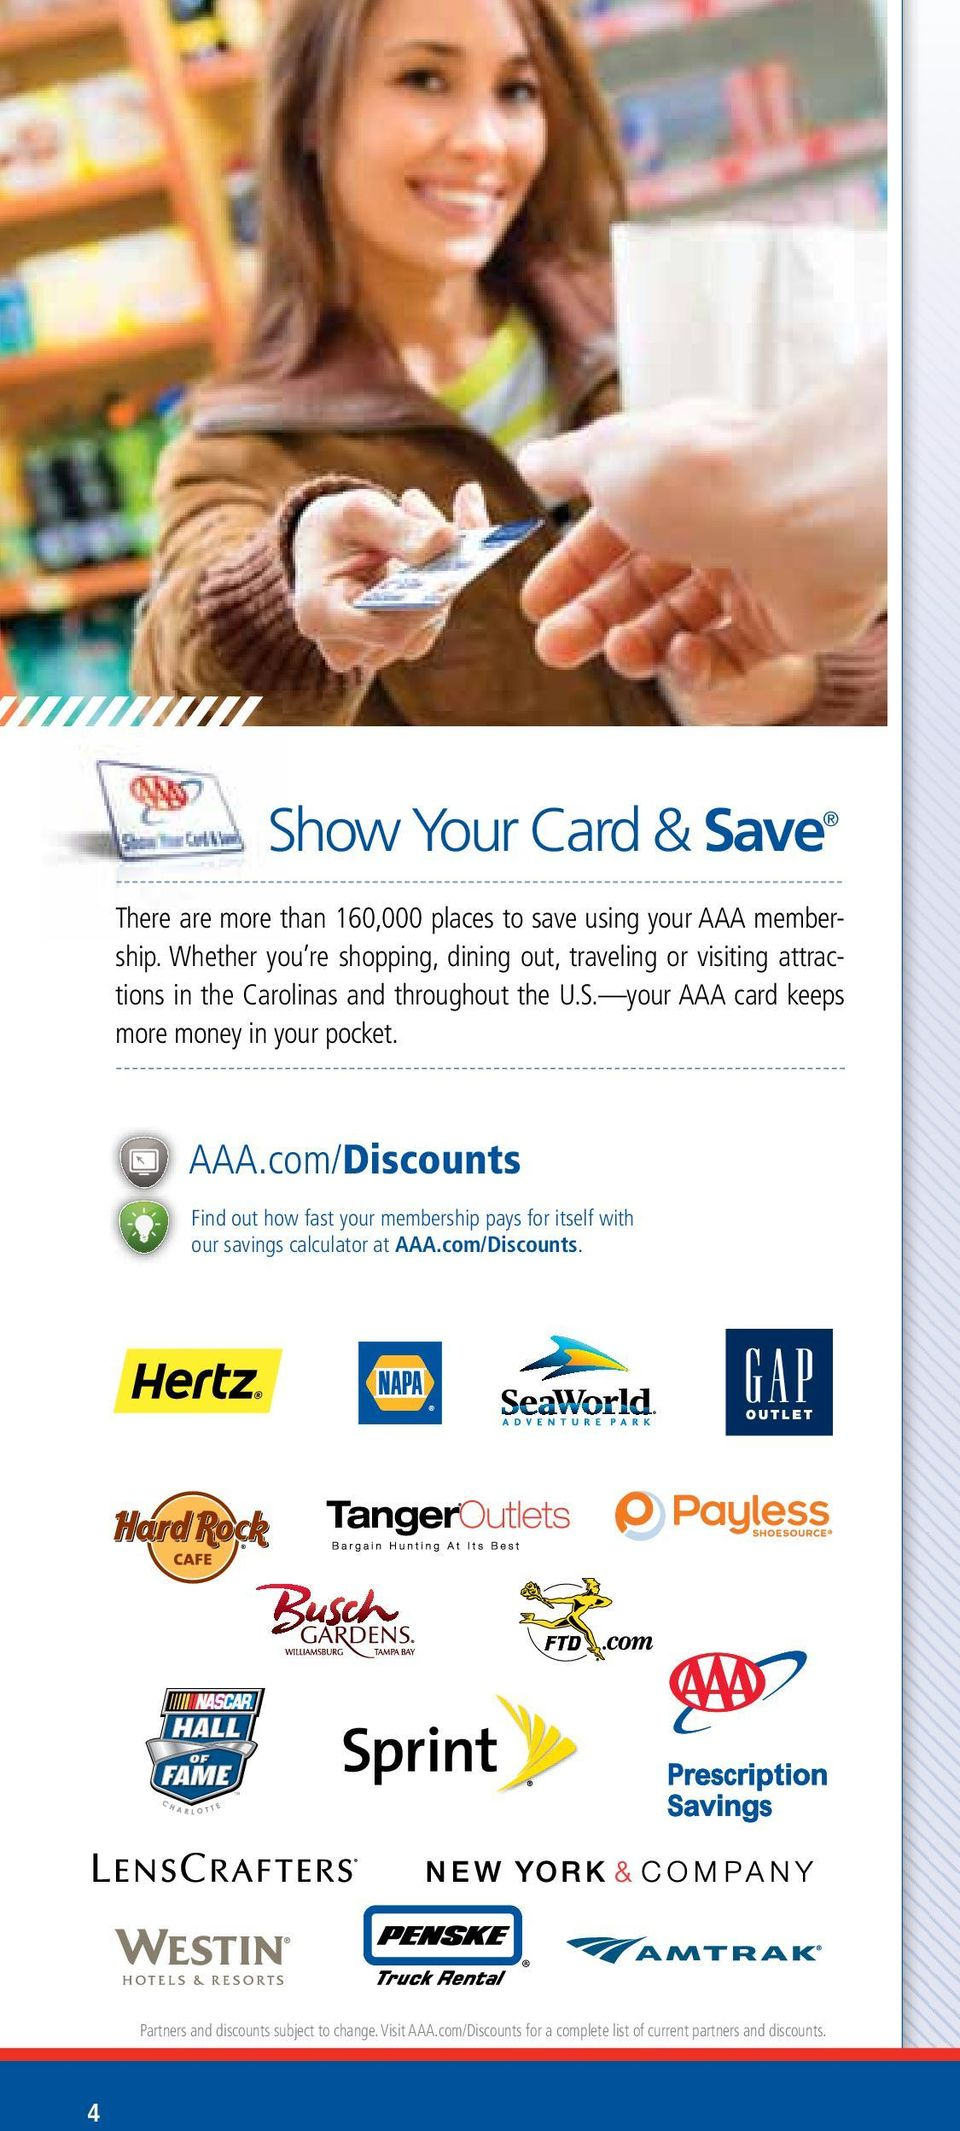 your AAA card keeps more money in your pocket. AAA.com/Discounts Find out how fast your membership pays for itself with our savings calculator at AAA.